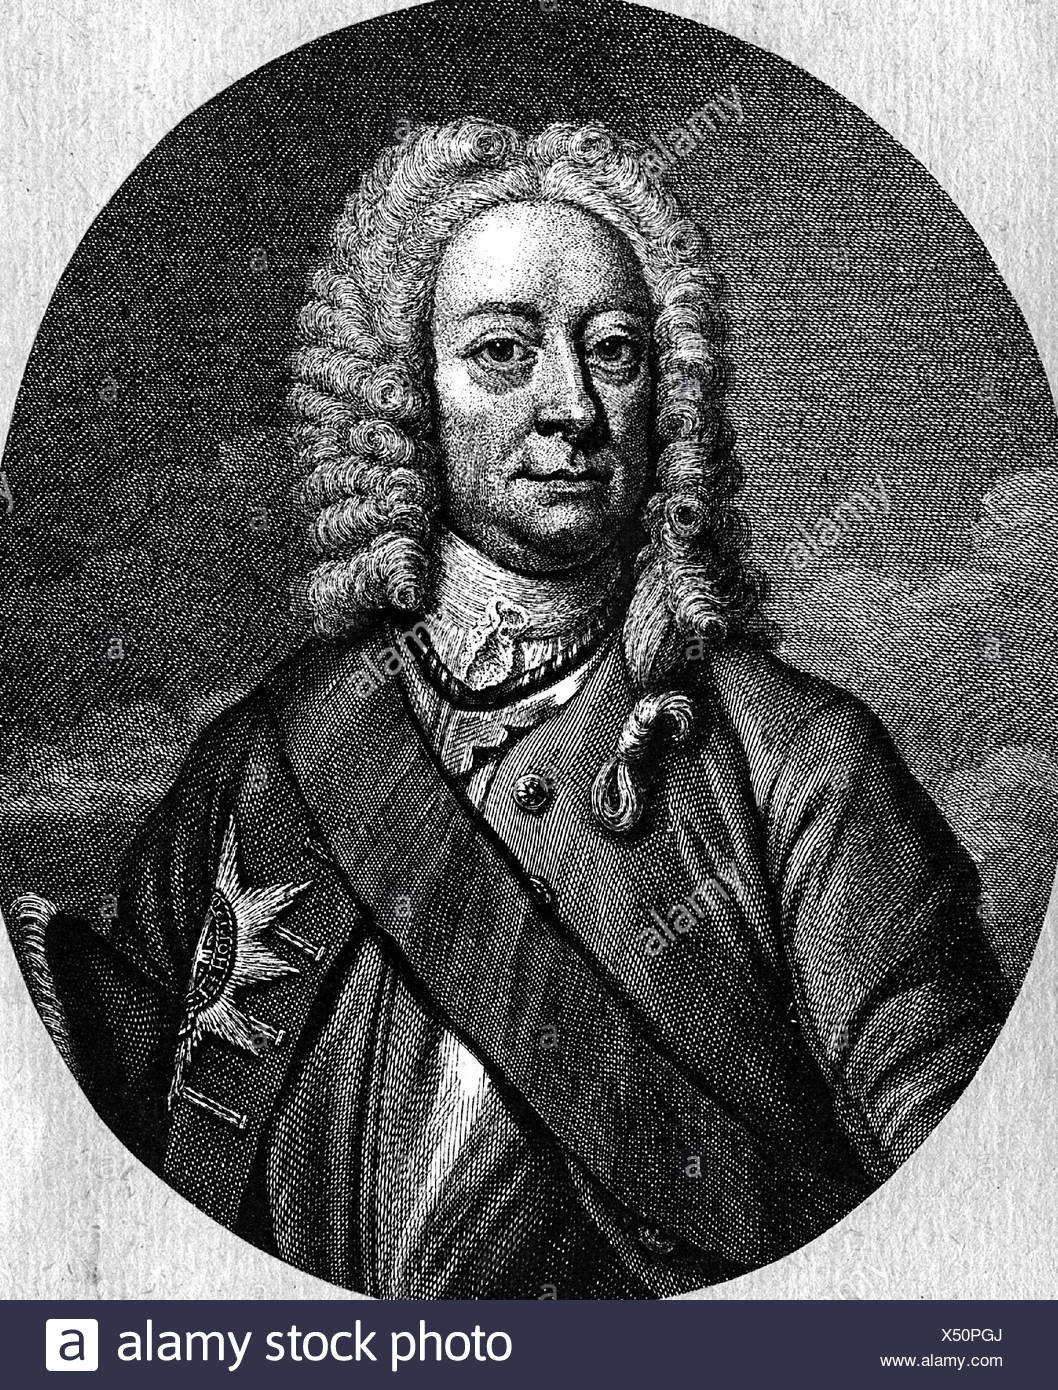 George II, 30.10.1683 - 25.10.1760, King von , Artist's Copyright has not to be cleared - Stock Image